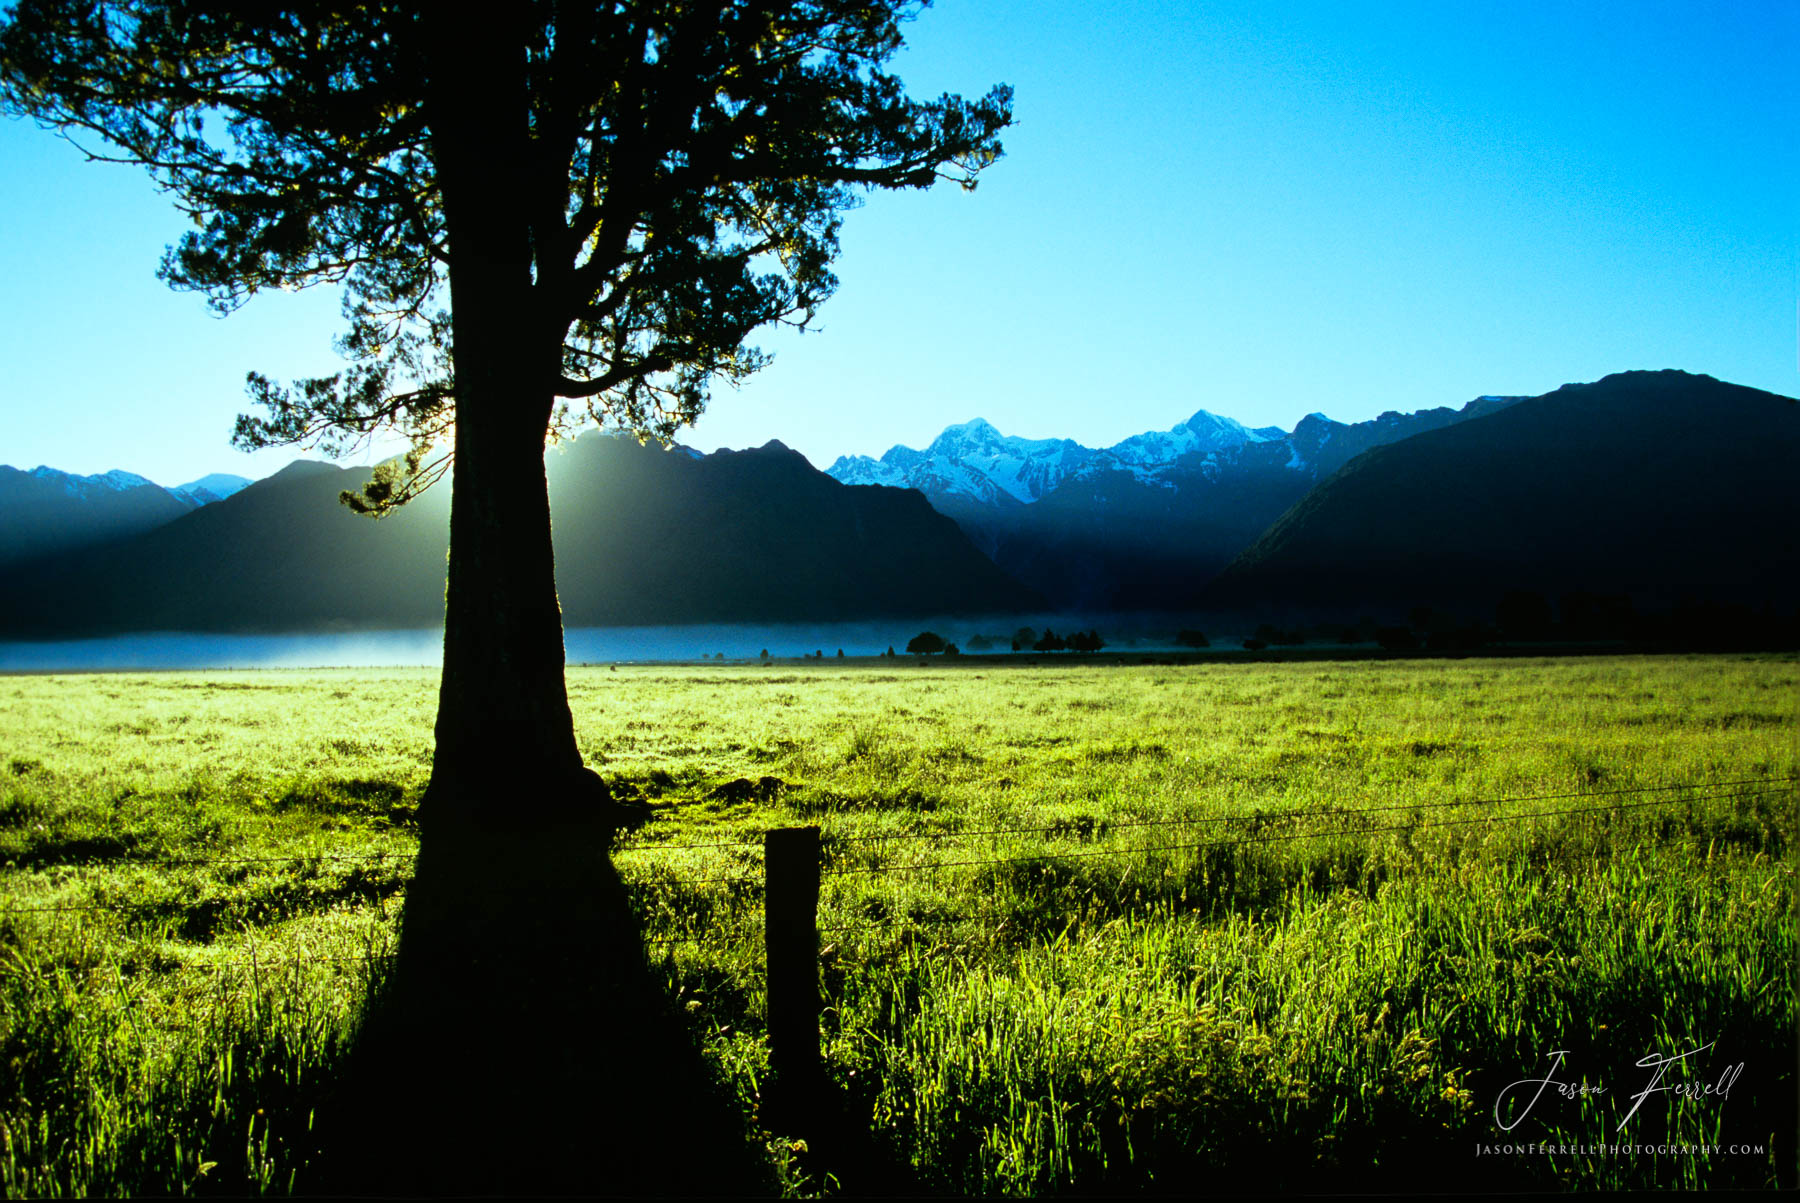 meadow and mountains, south island, new zealand, epic landscape, mount tasman, mount cook, snow, green, sun, light, photo